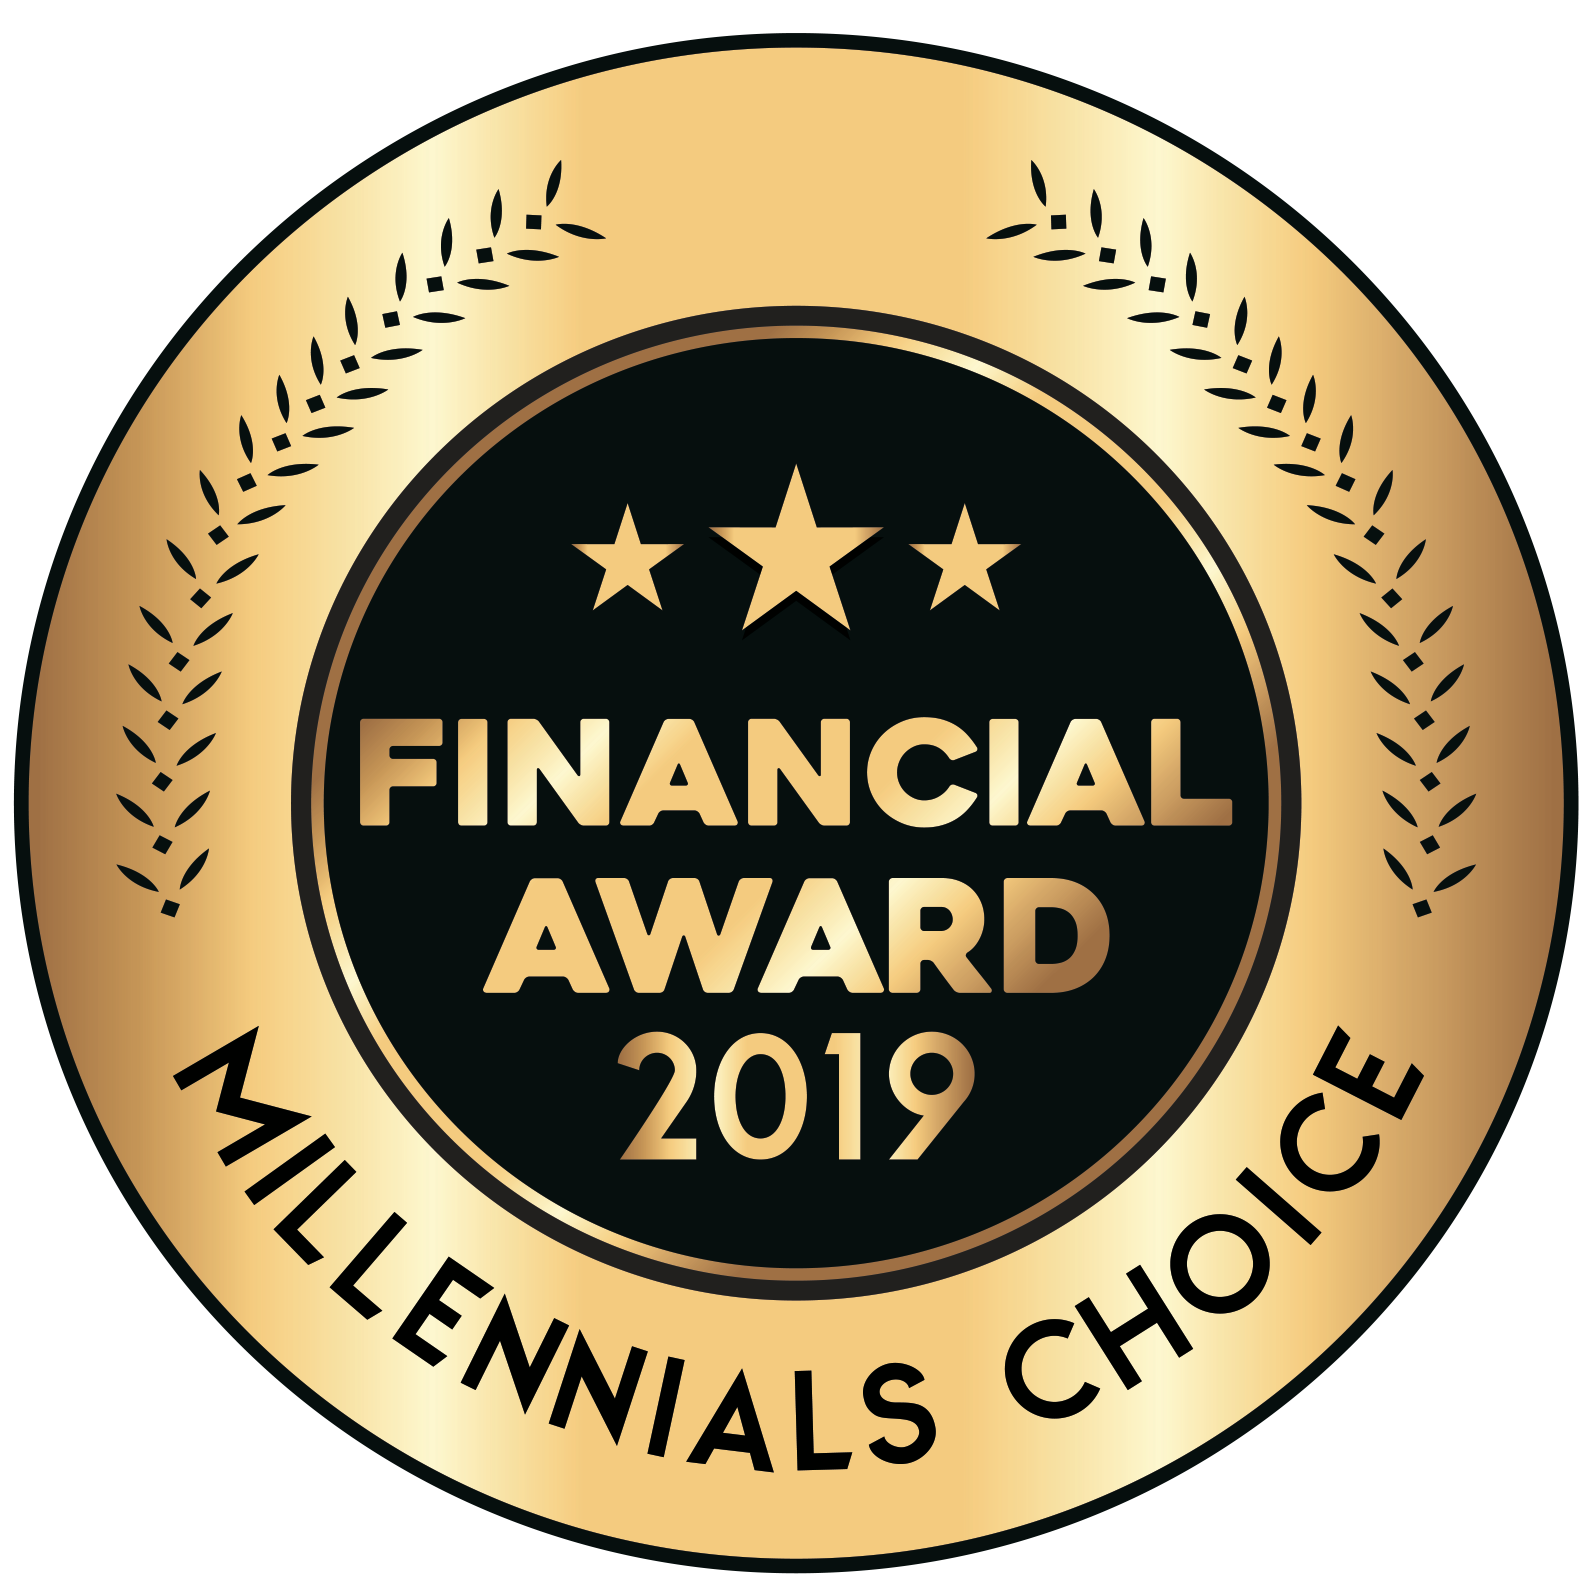 Financial Award 2019